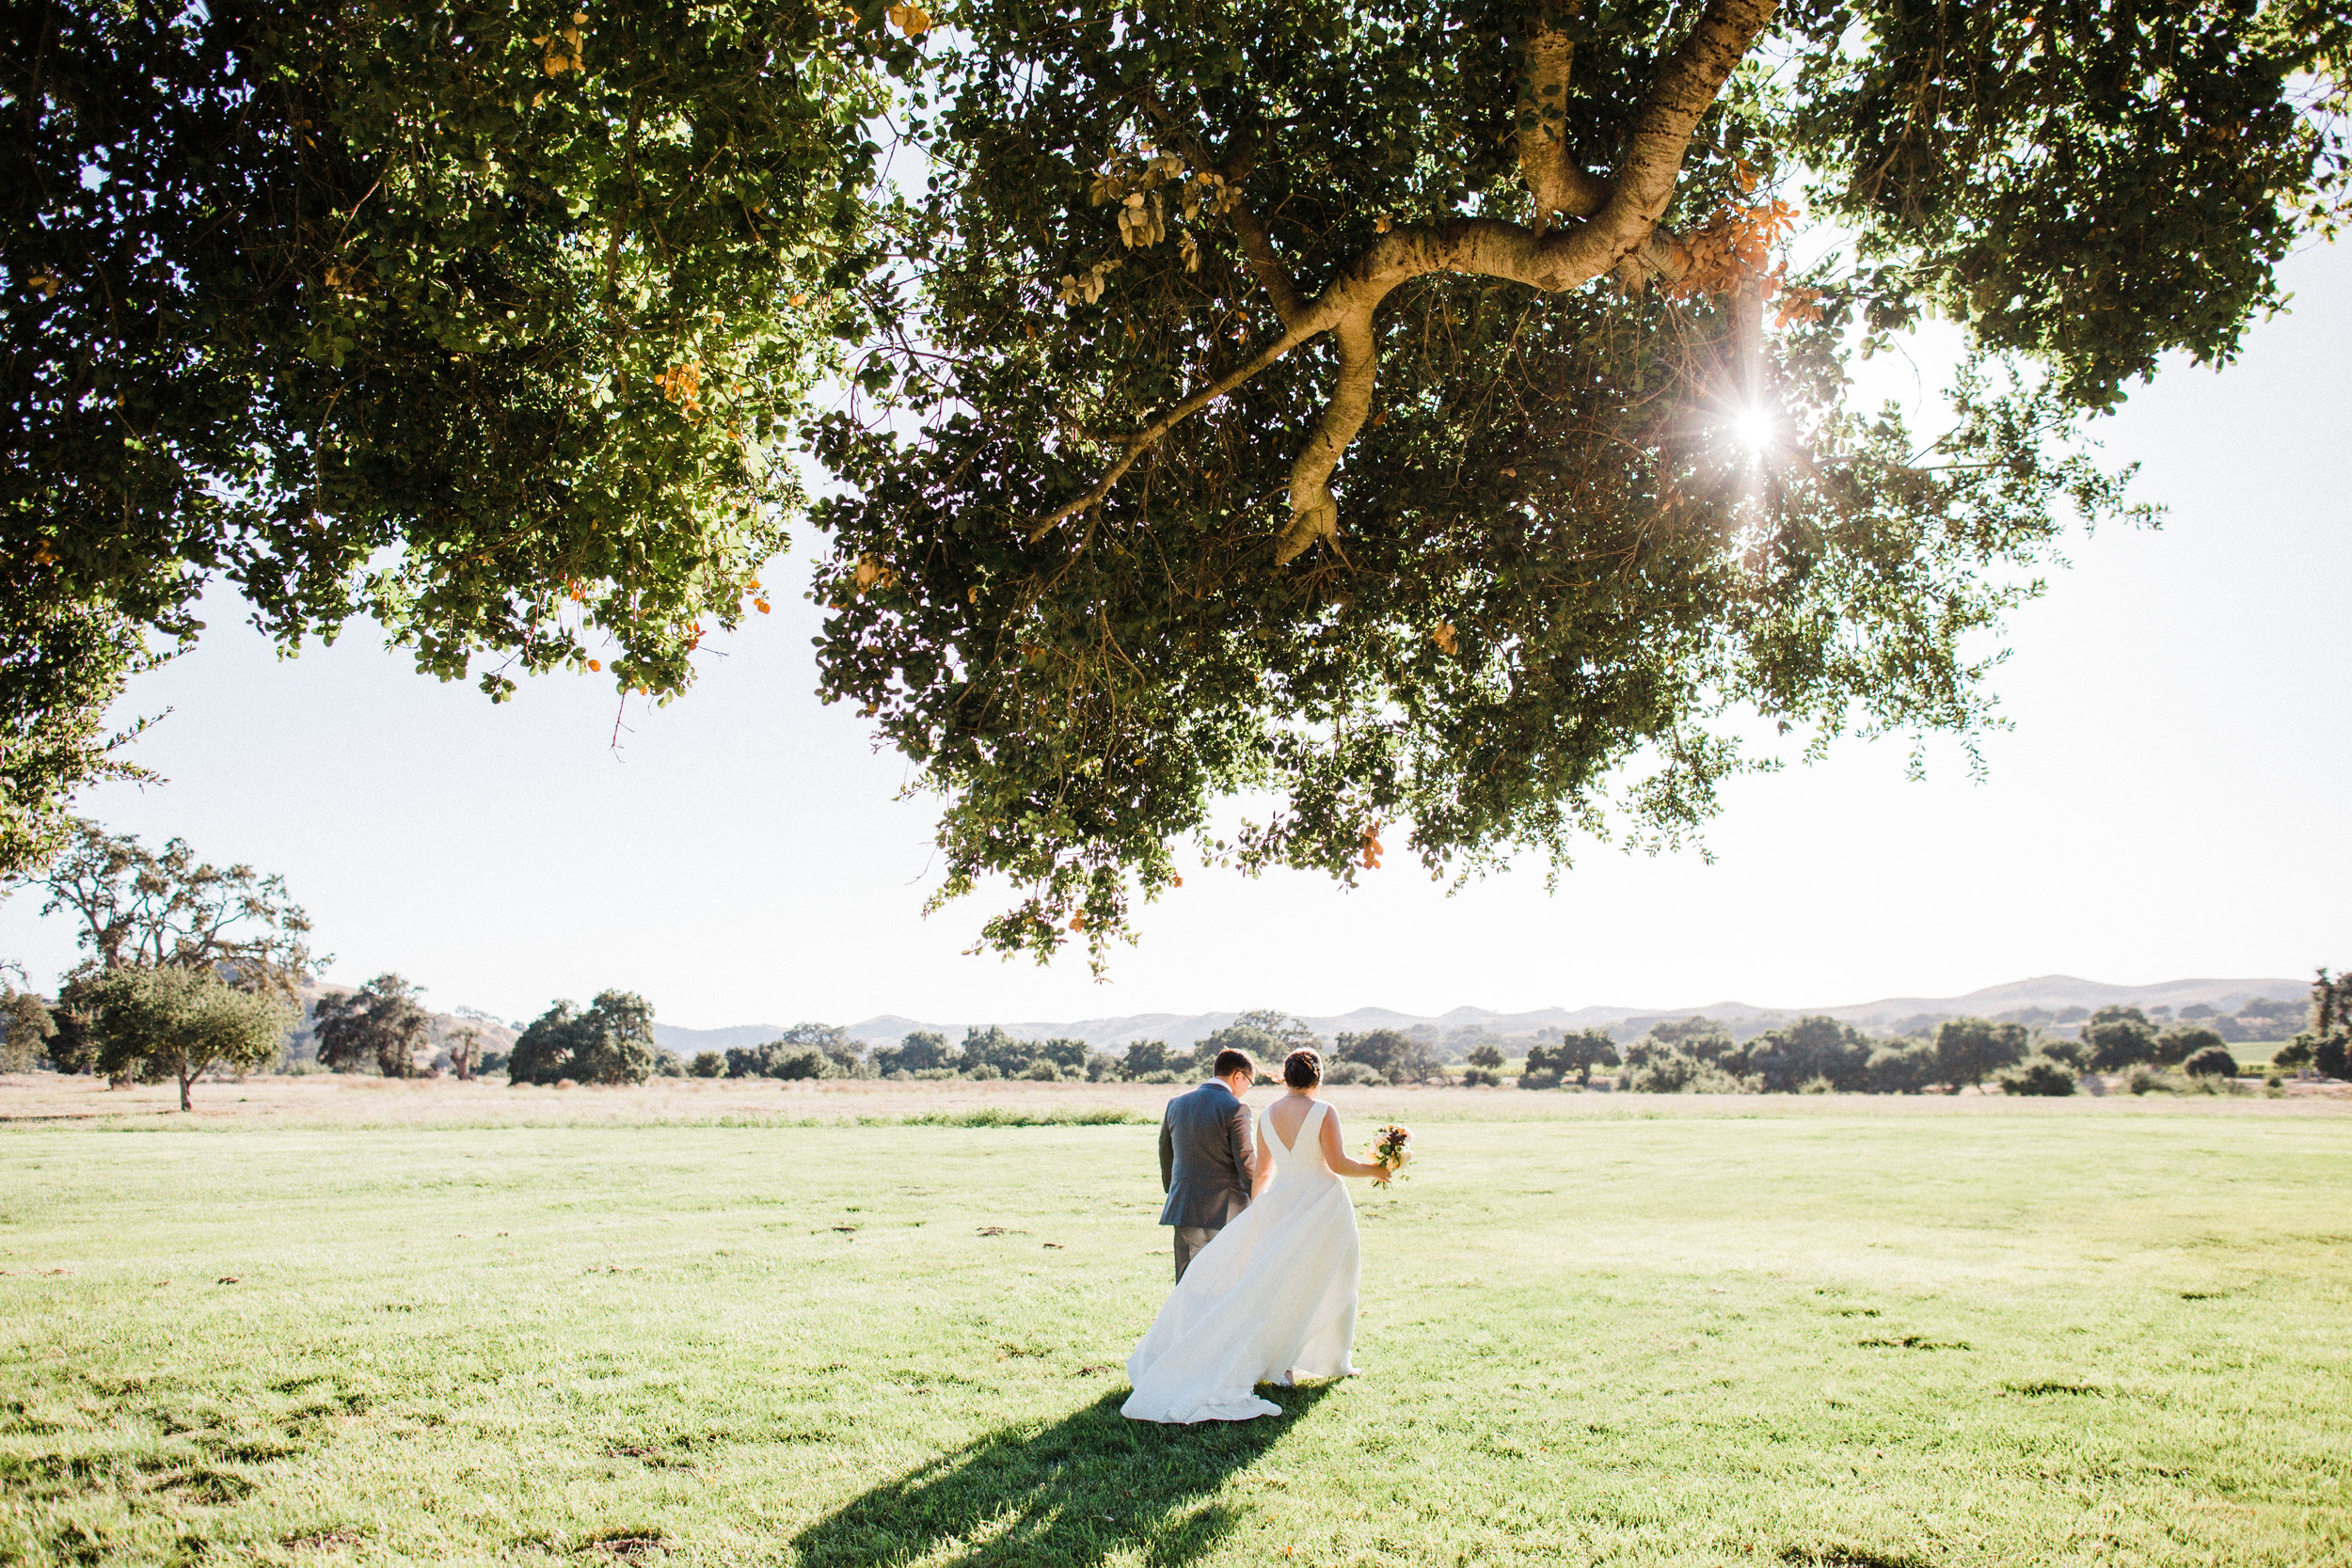 www.santabarbarawedding.com | Michael and Anna Costa | Crossroads Estate at Firestone Vineyard | Soleil Events | Anna Le Pley Taylor | bride and groom